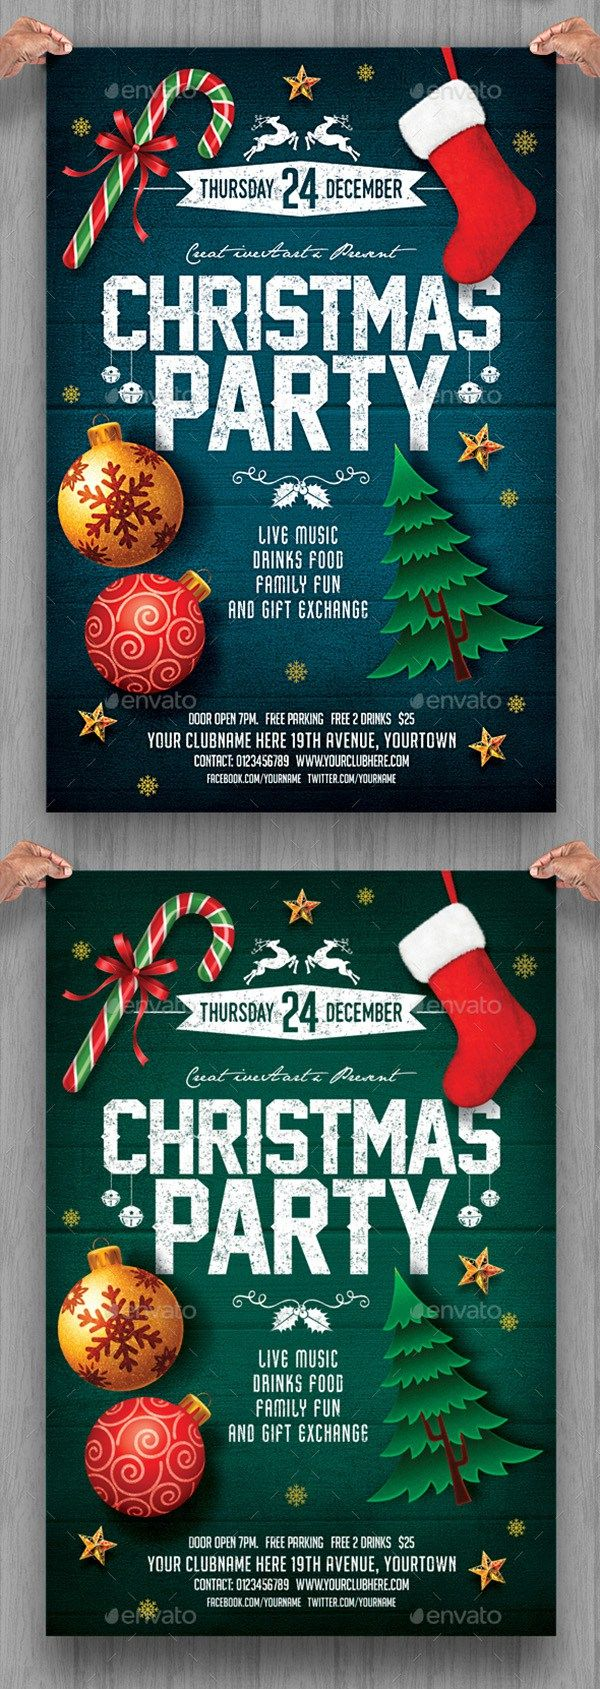 Christmas Poster Maker Merry Christmas And Happy New Year 2018